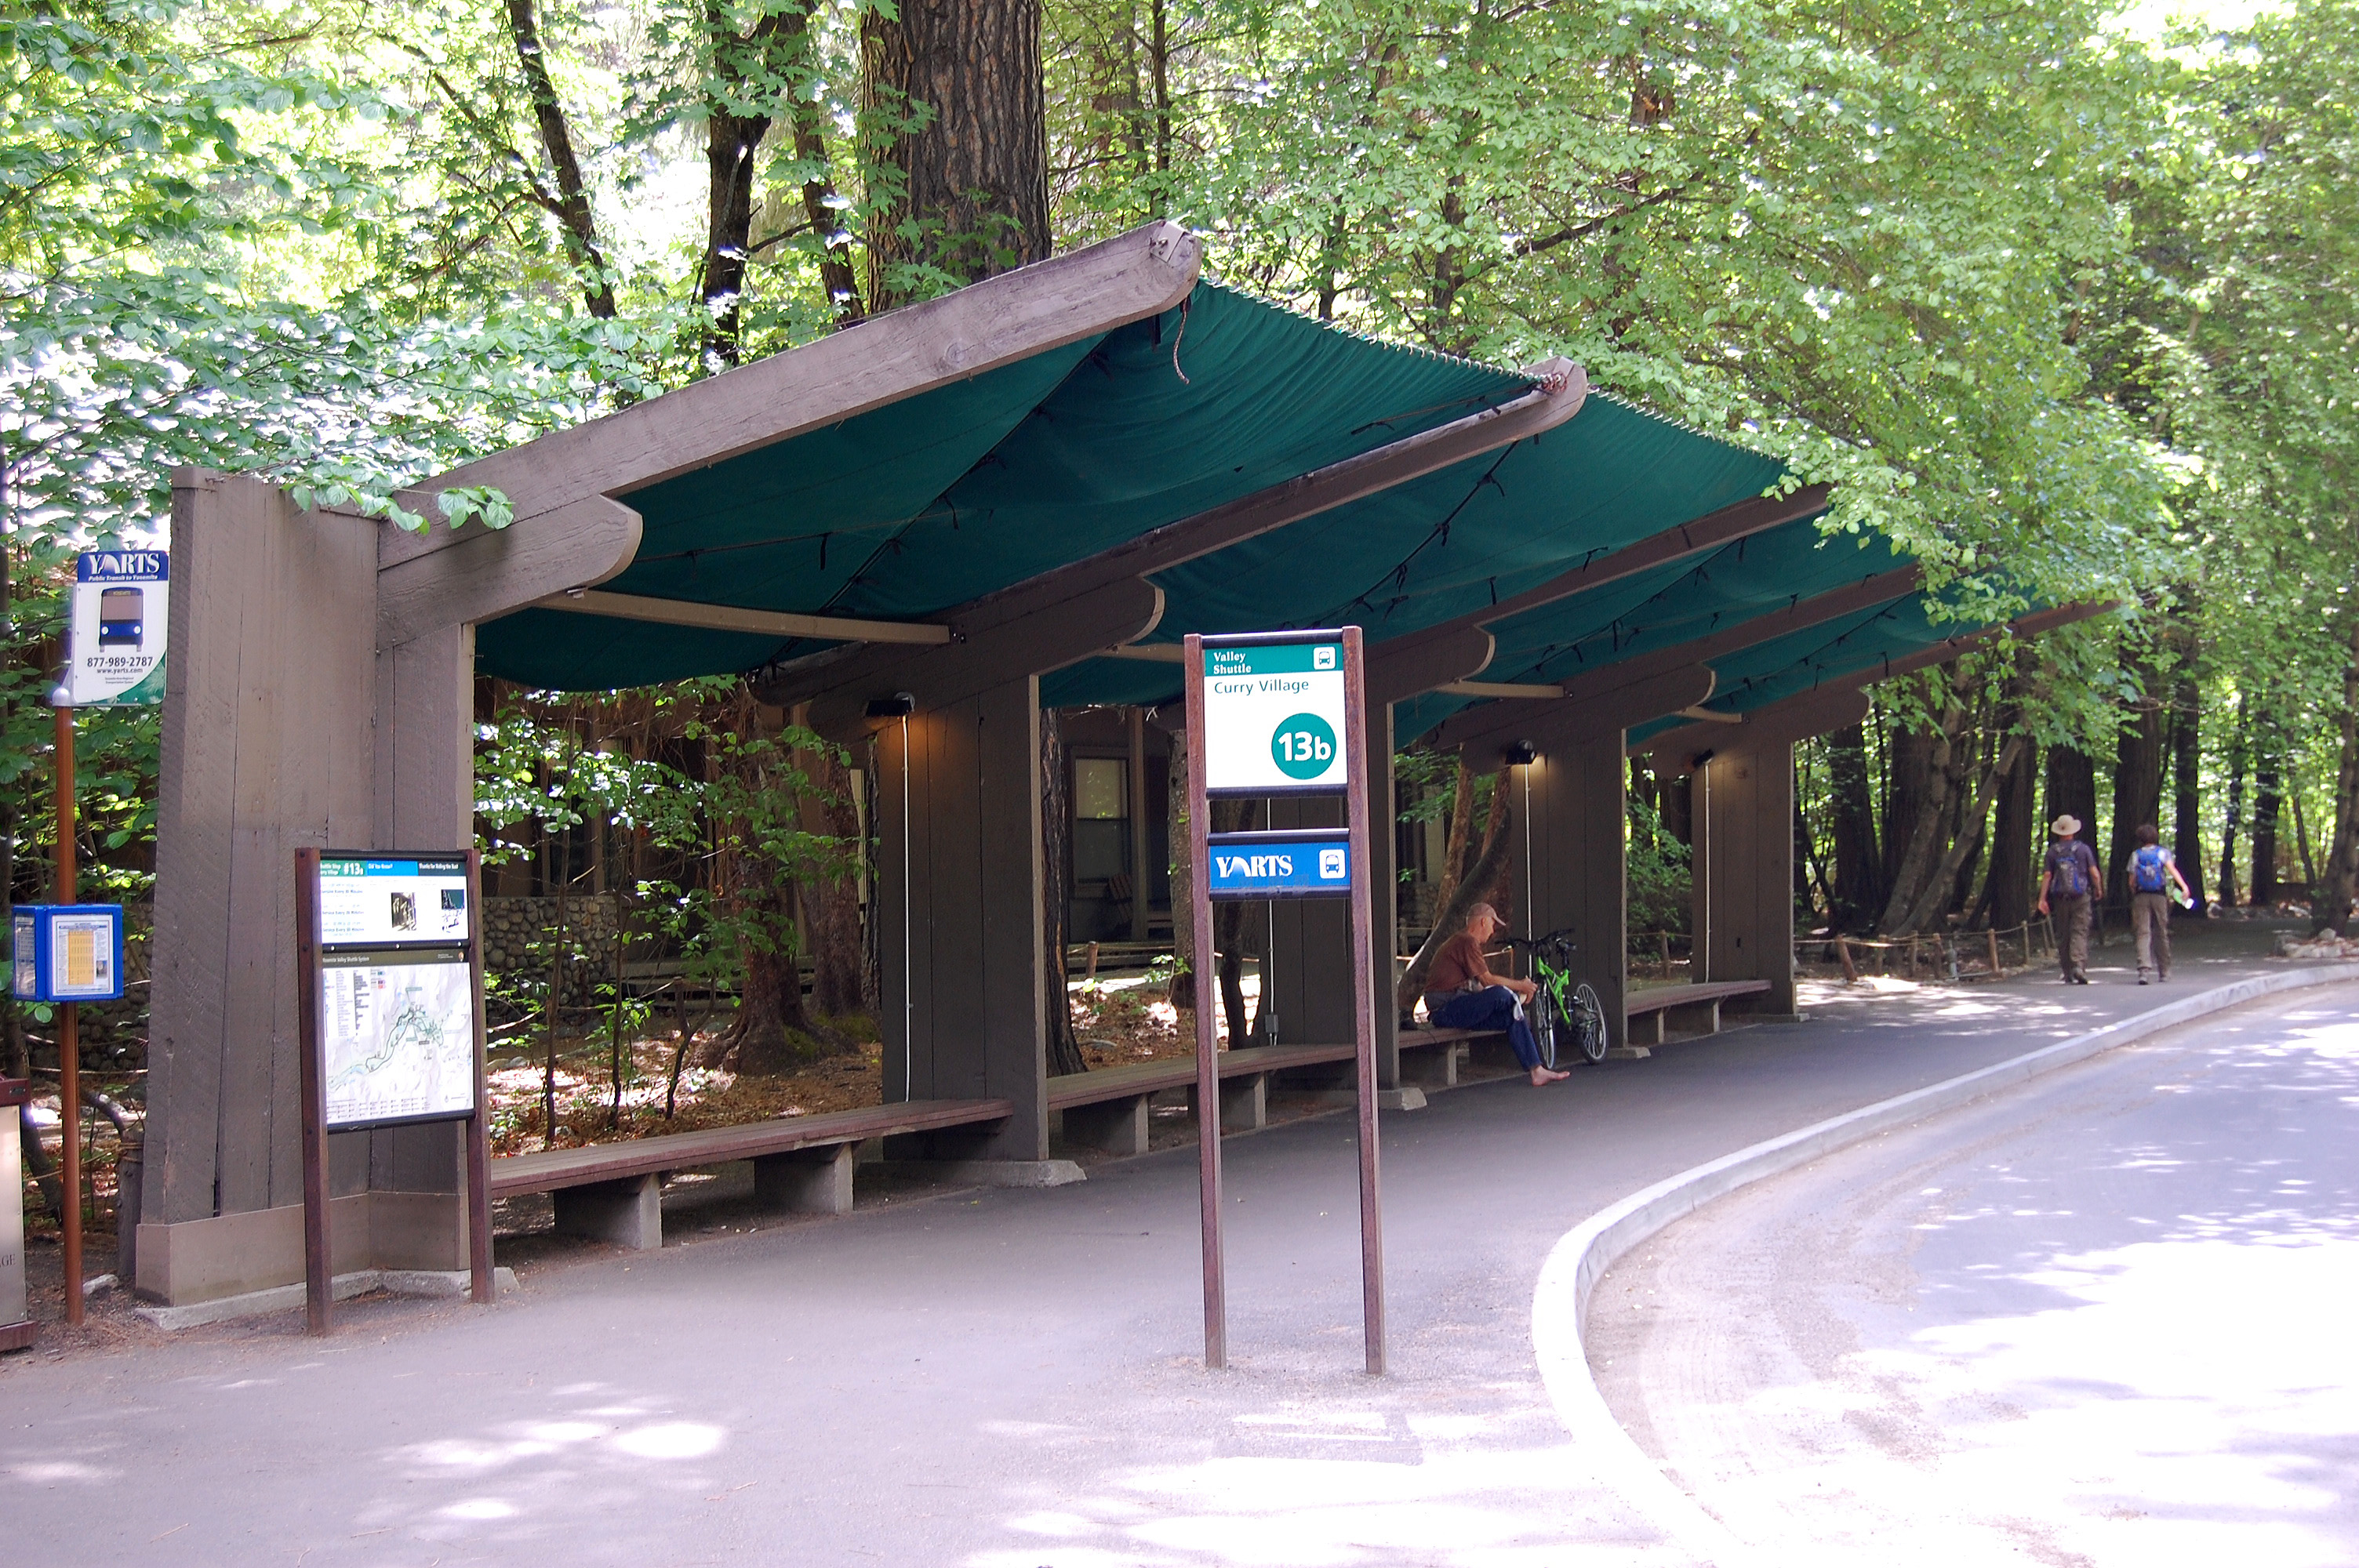 Bus Stop Shelters : Treasures in the park bus shelters yosemite national